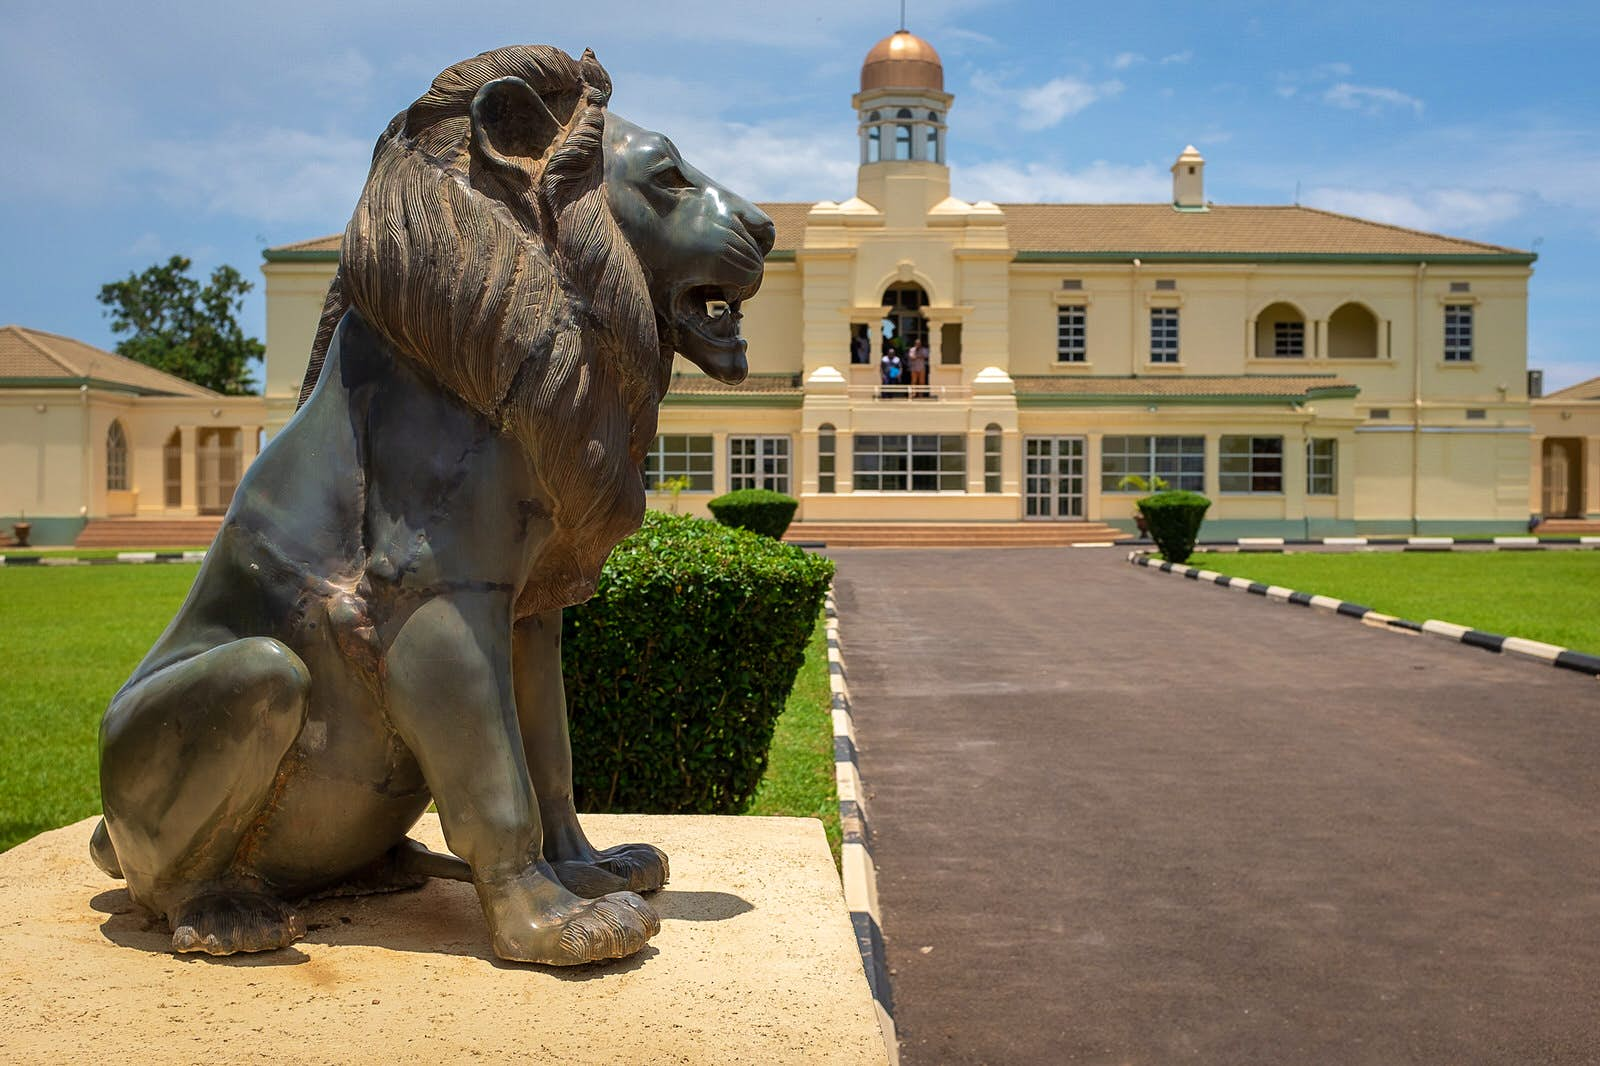 A large stone lion stands next to a paved path leading to Mengo Palace in the distance; the cream-coloured building is grand, with a gold-topped tower